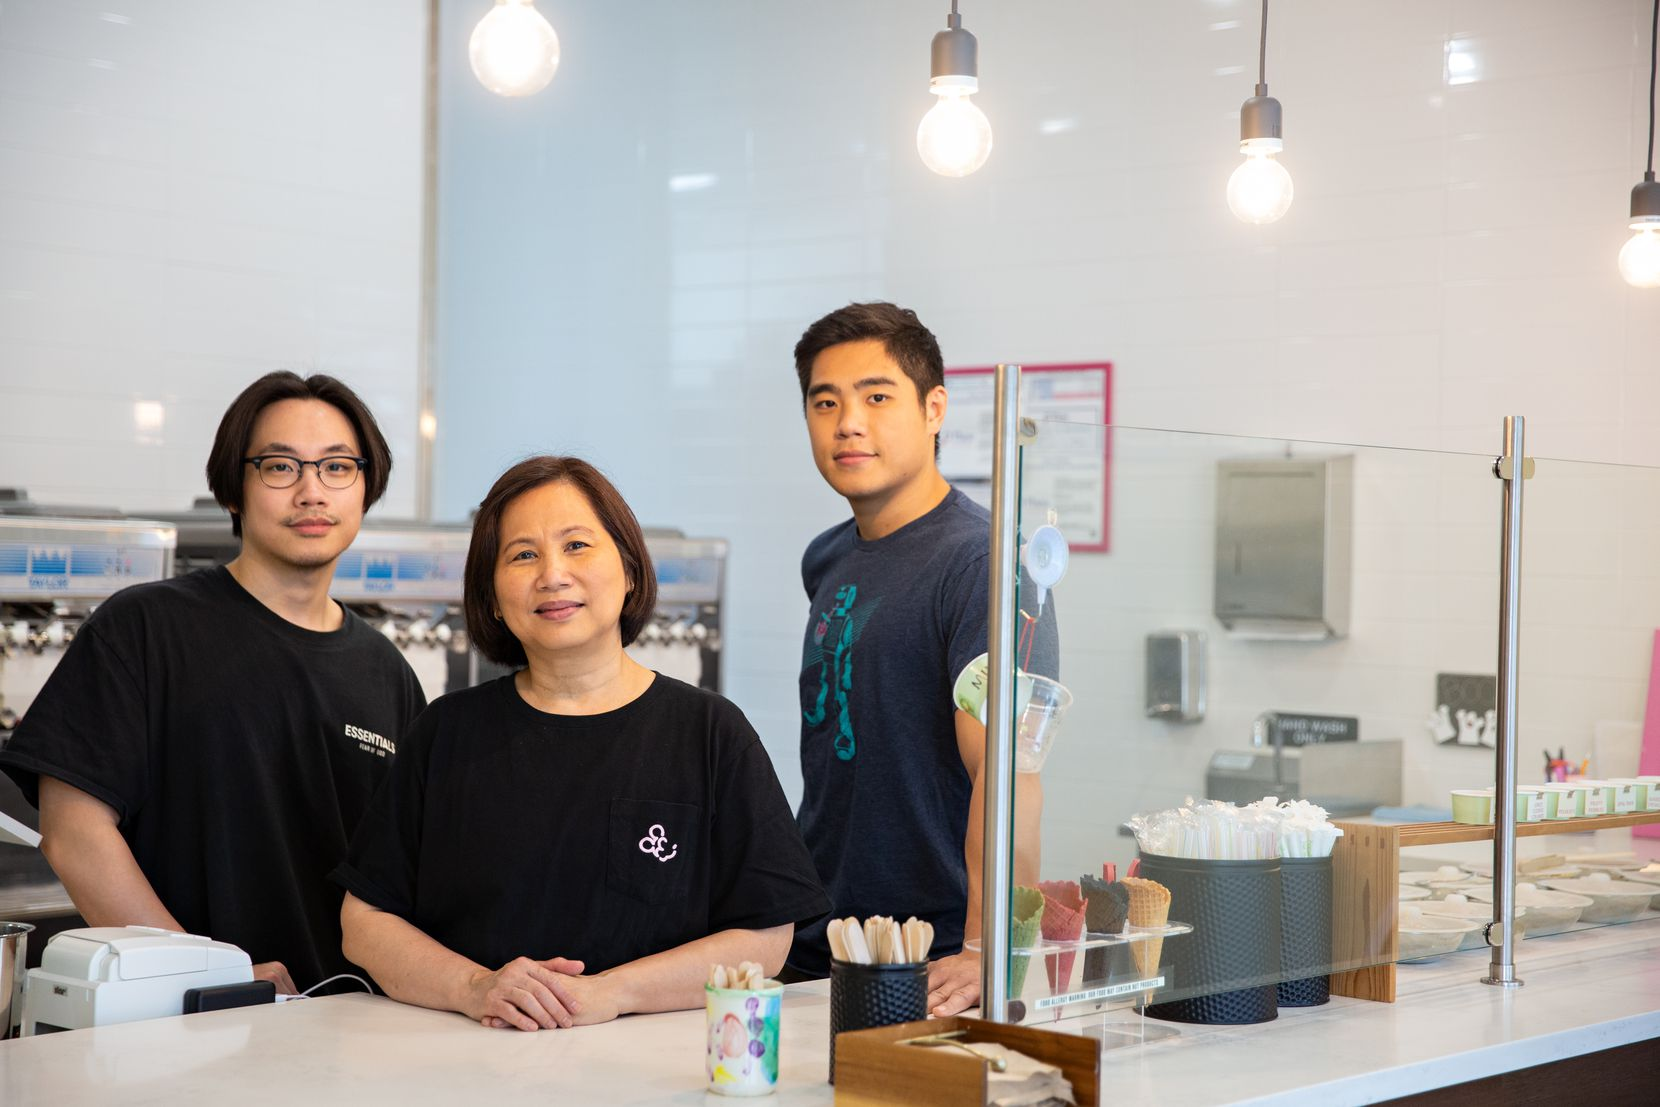 Lilis Pramasurja, founder and soft serve flavor connoisseur, works with her two sons Darien Wong and Andre Wong at Sugar Pine Creamery in Plano.